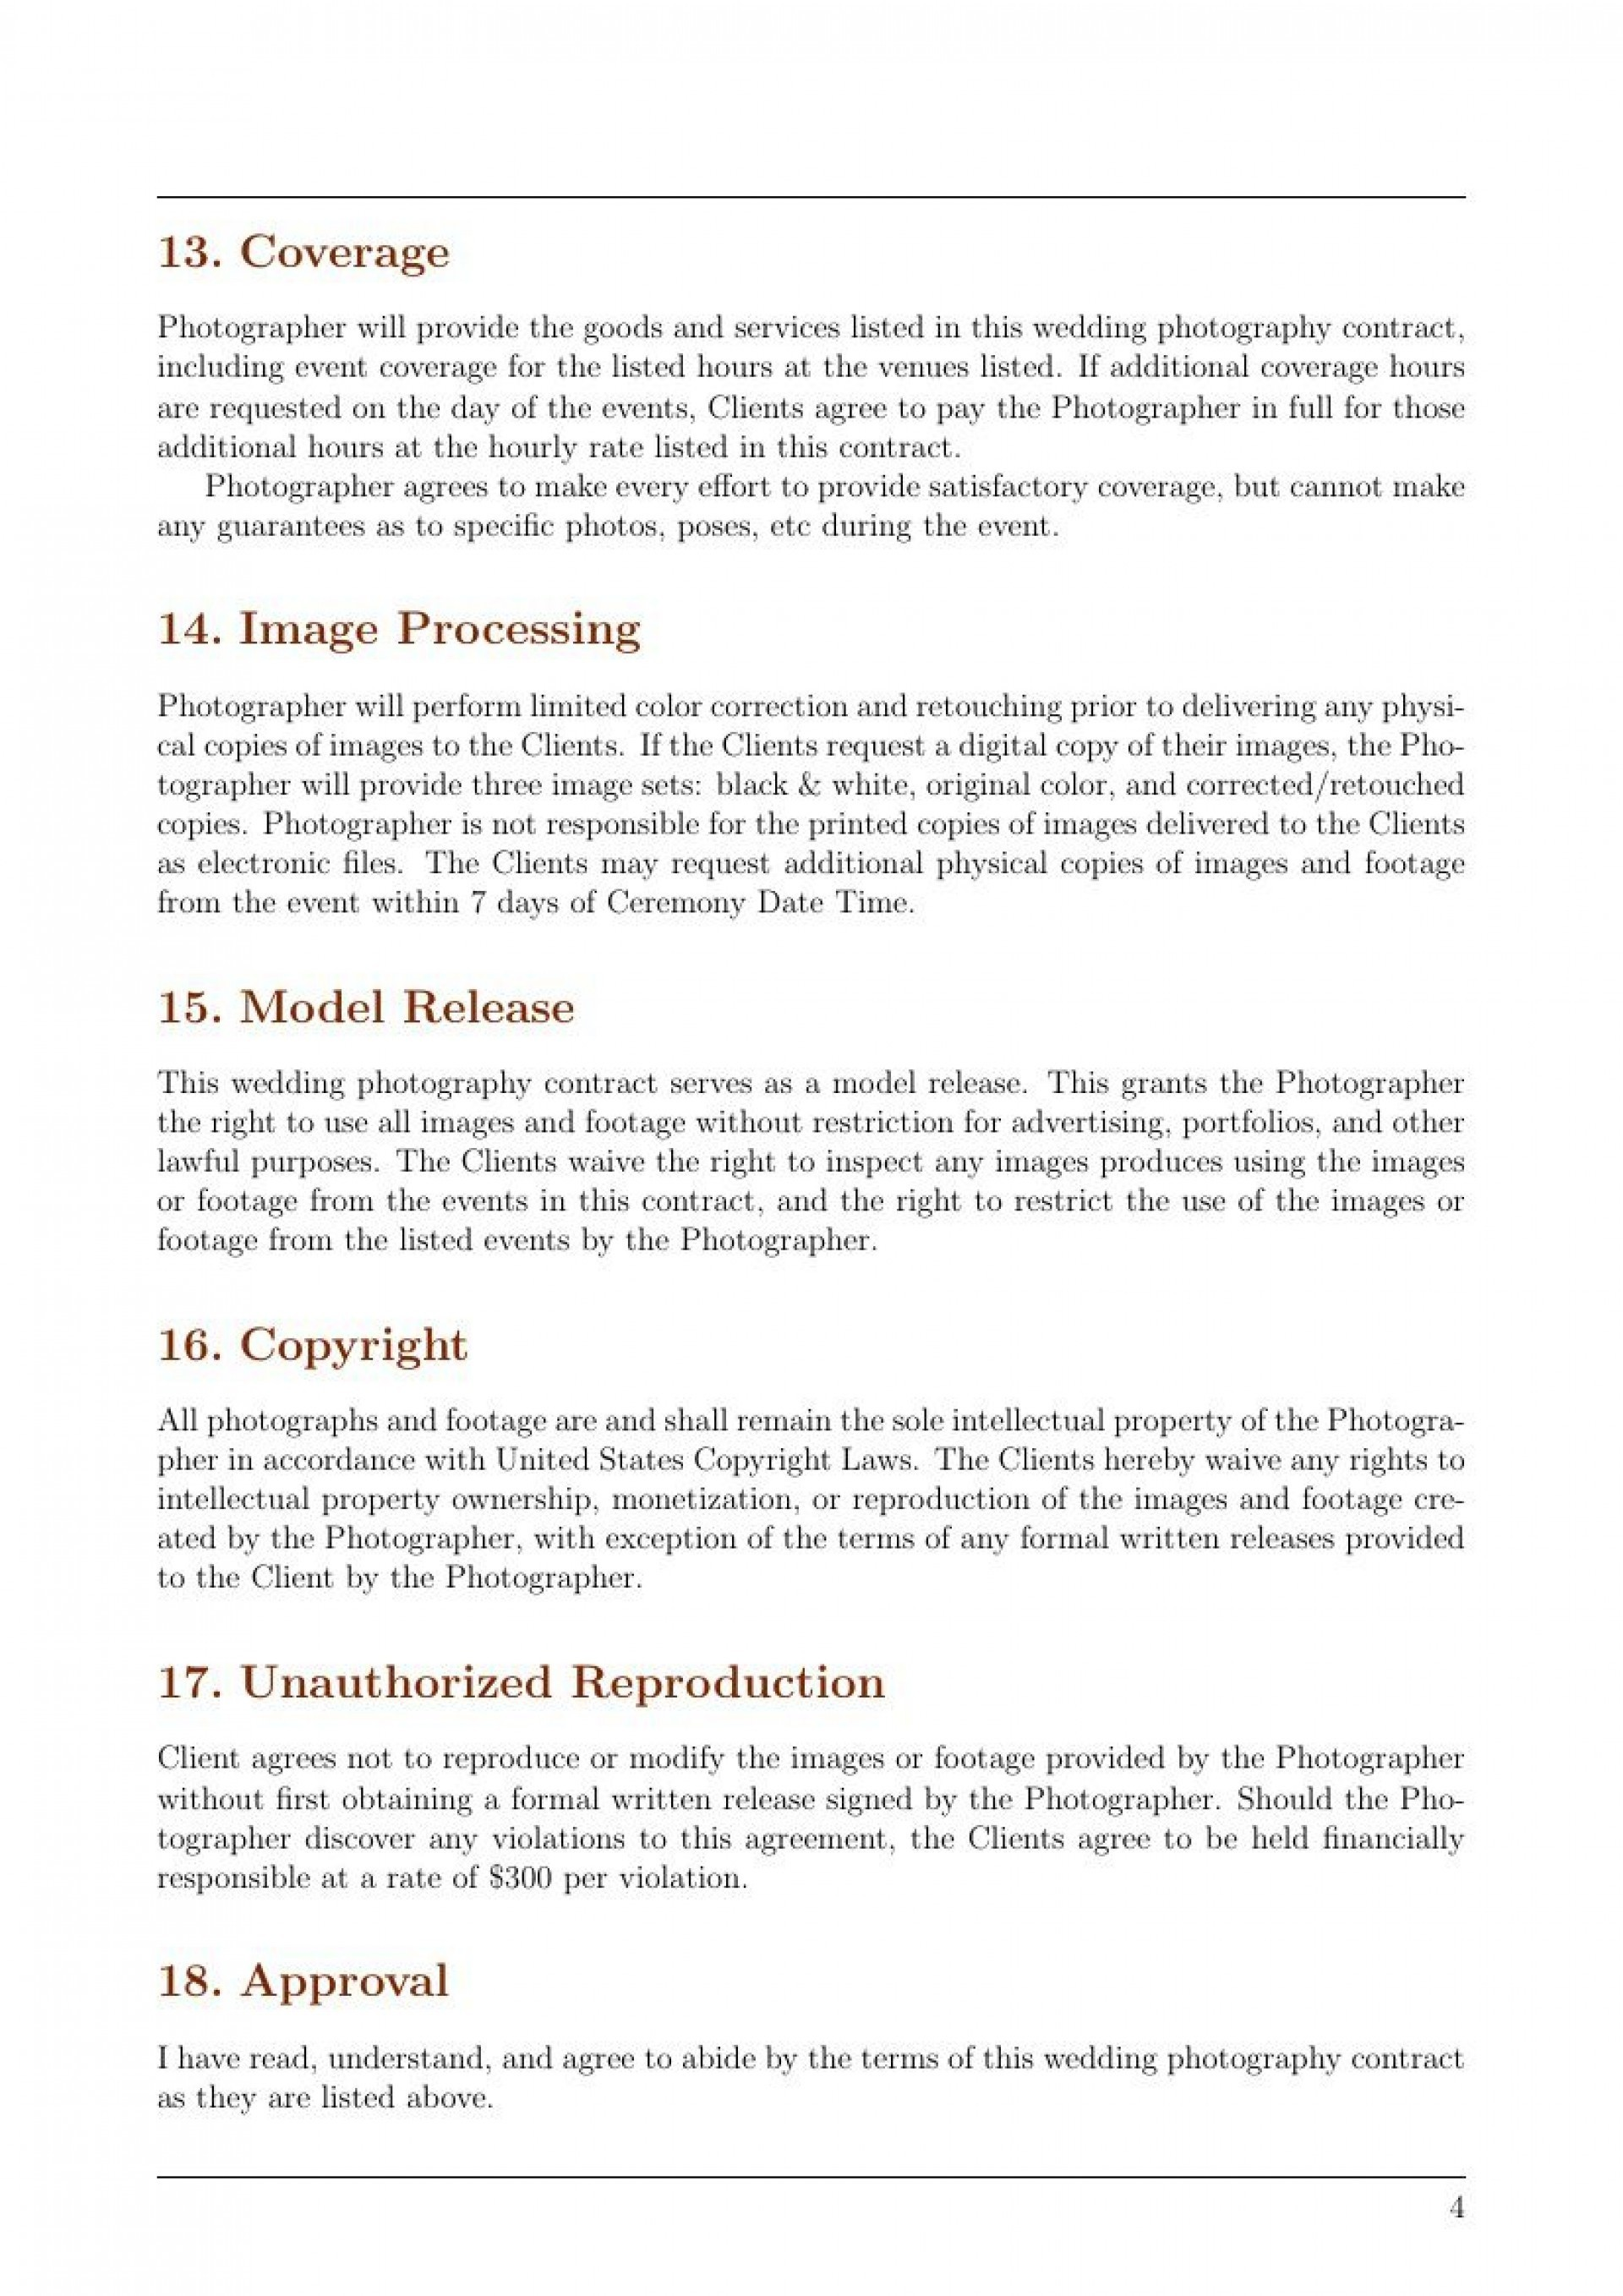 002 Magnificent Wedding Photographer Contract Template Concept  Free Photography Uk1920